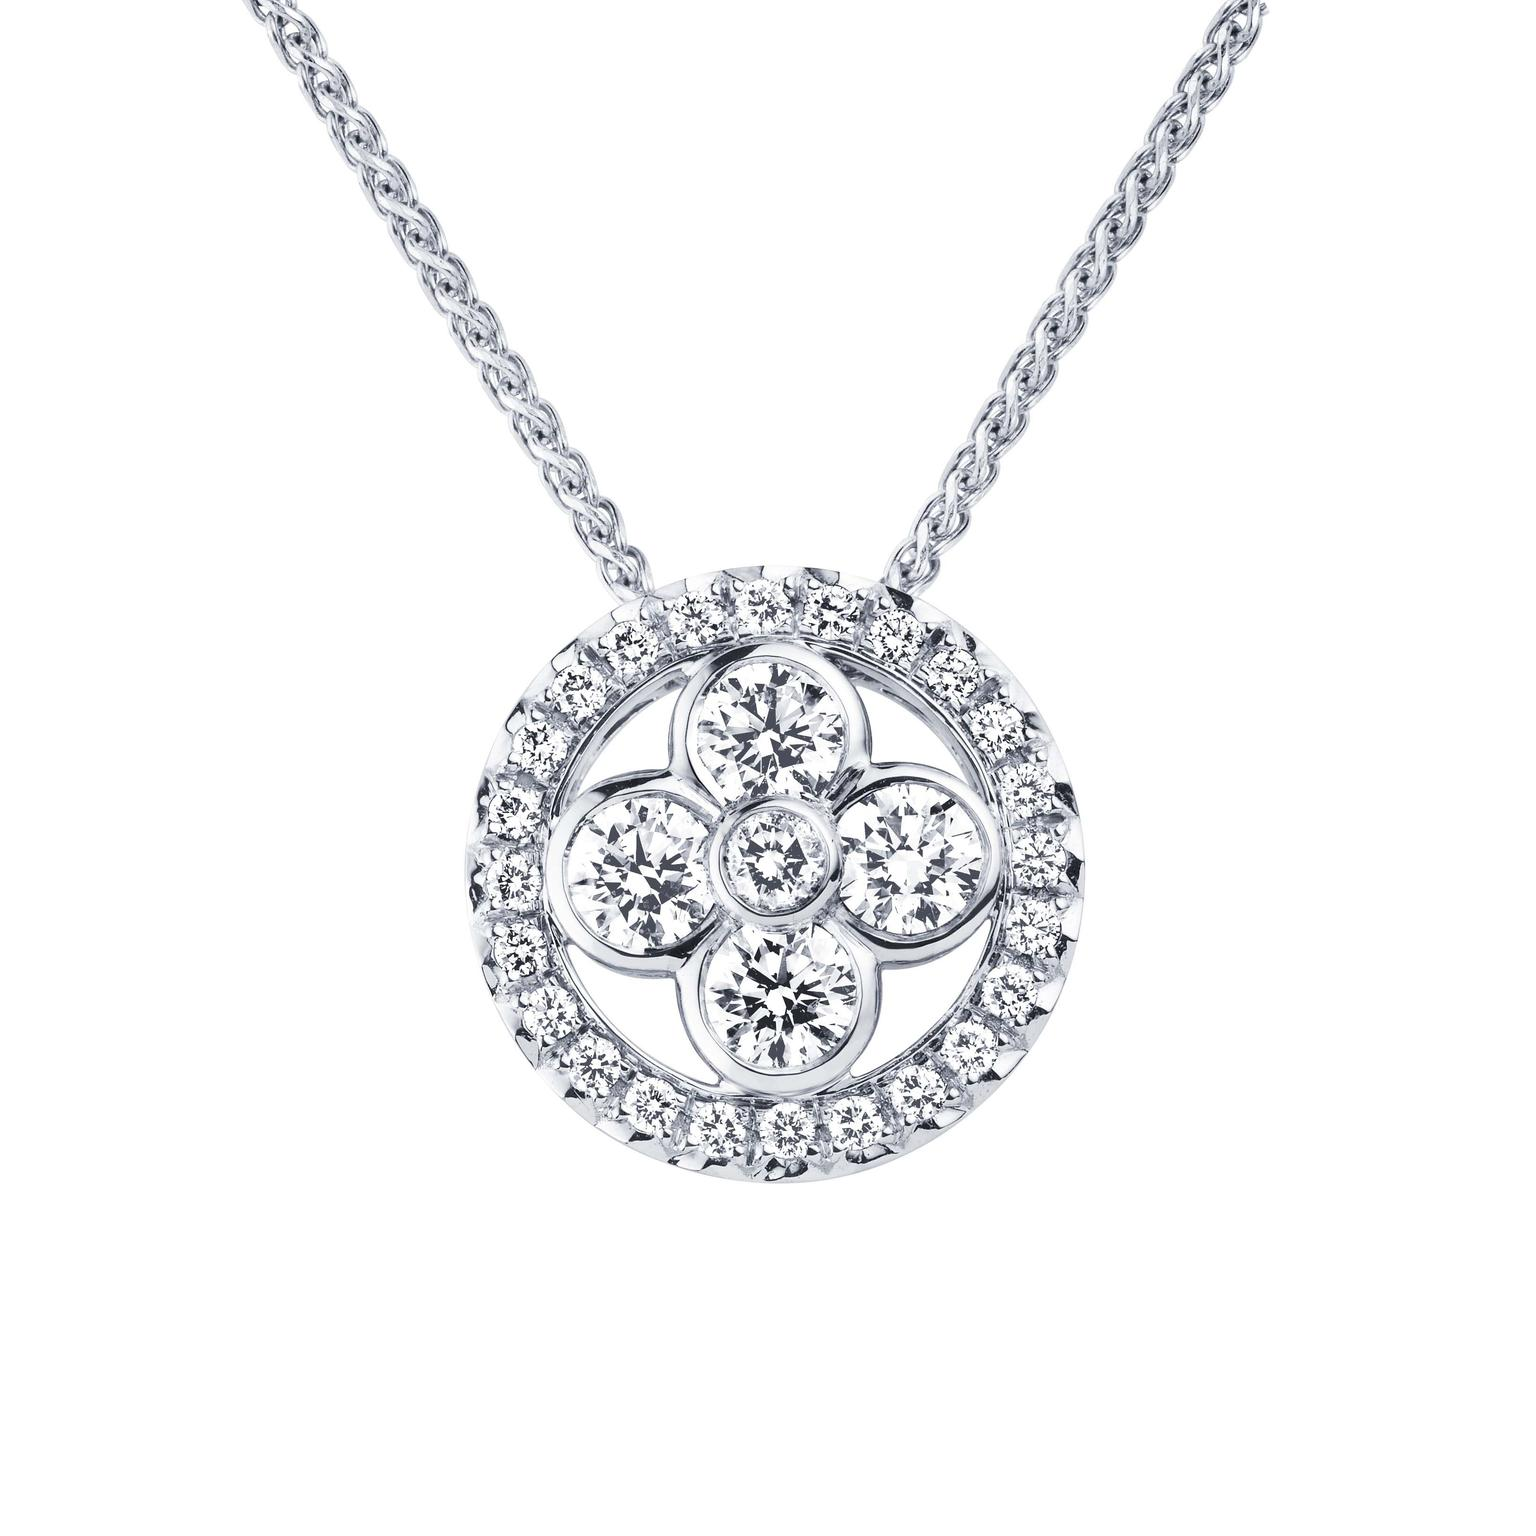 This Louis Vuitton Monogram Sun pendant necklace radiates warmth thanks to the use of summer-bright white gold and diamonds.